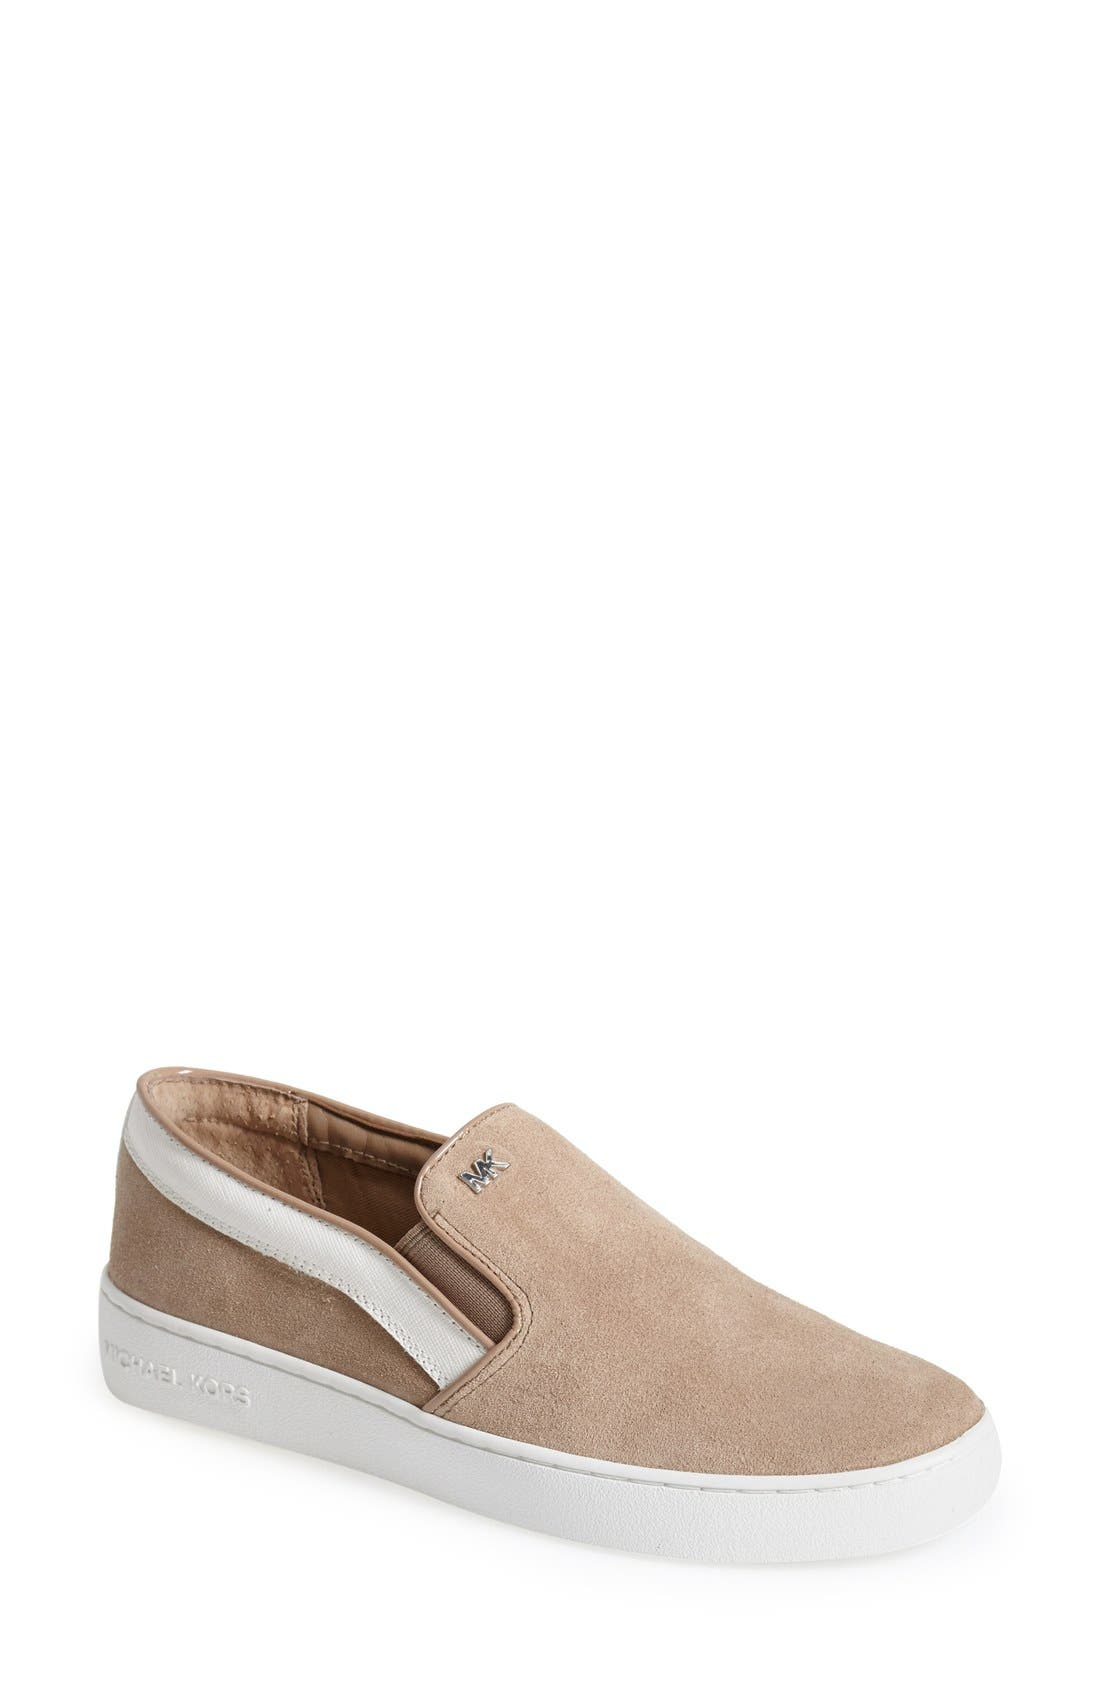 Keaton Slip-On Sneaker,                             Main thumbnail 35, color,